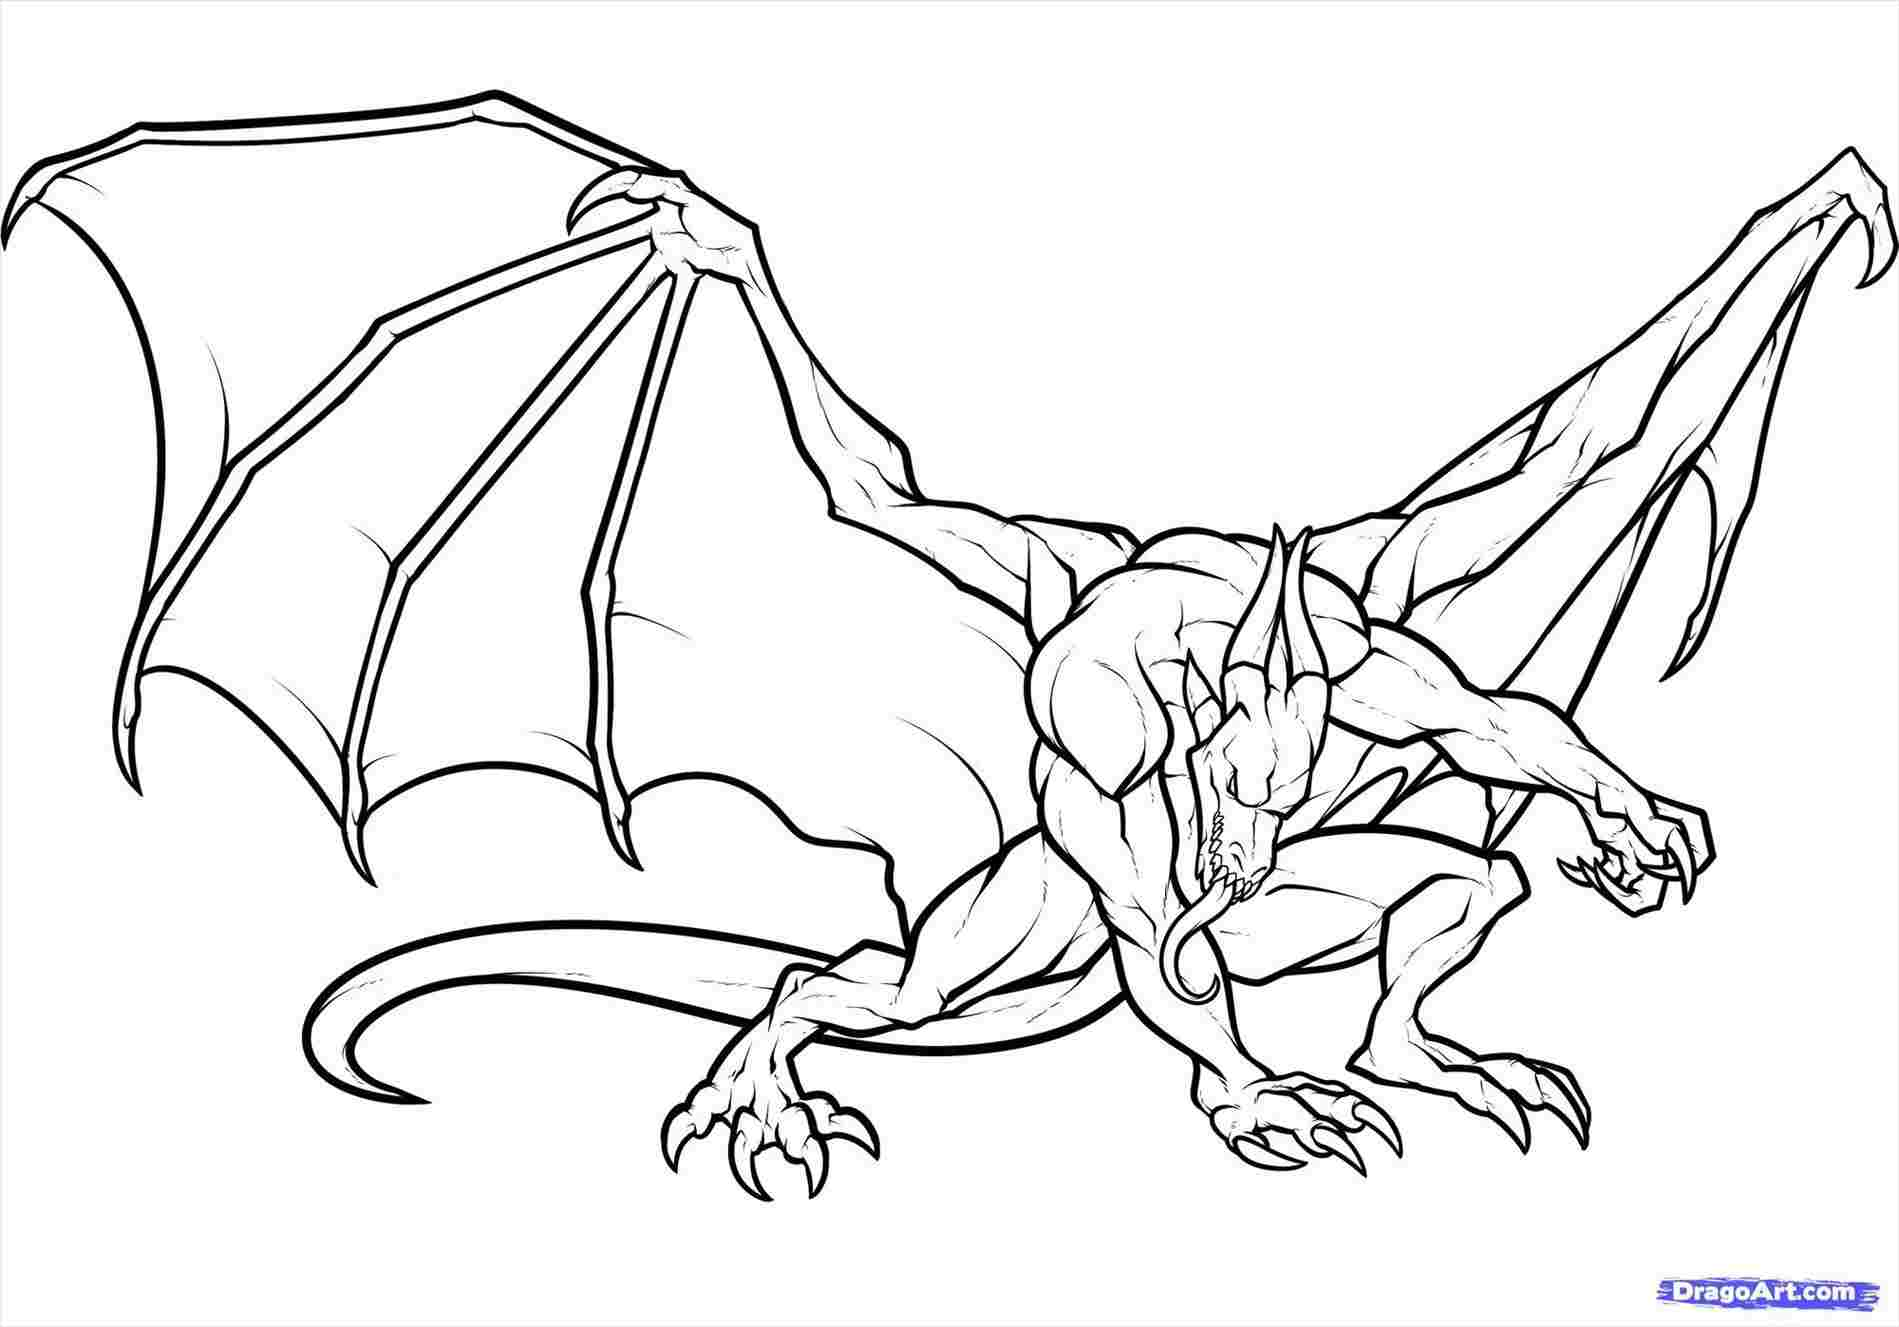 dragon drawing easy how to draw cartoon dragons step by step dragons draw a dragon drawing easy